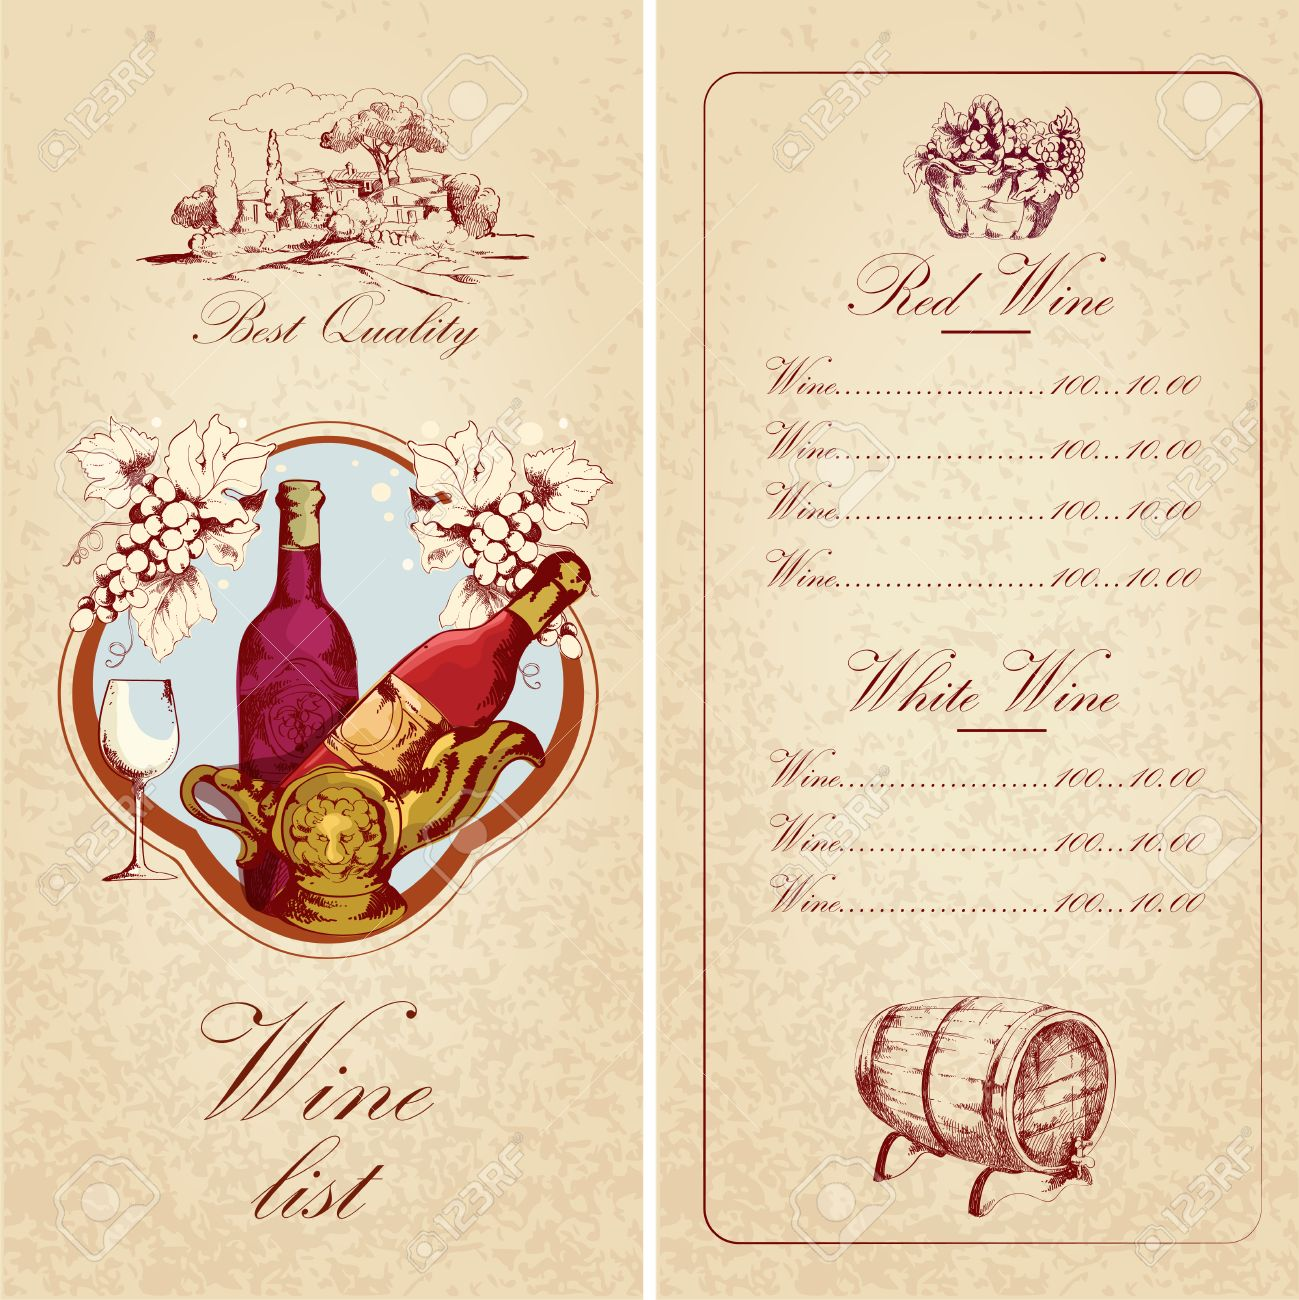 Vintage restaurant best quality wine list card menu template vintage restaurant best quality wine list card menu template vector illustration stock vector 27942311 pronofoot35fo Gallery